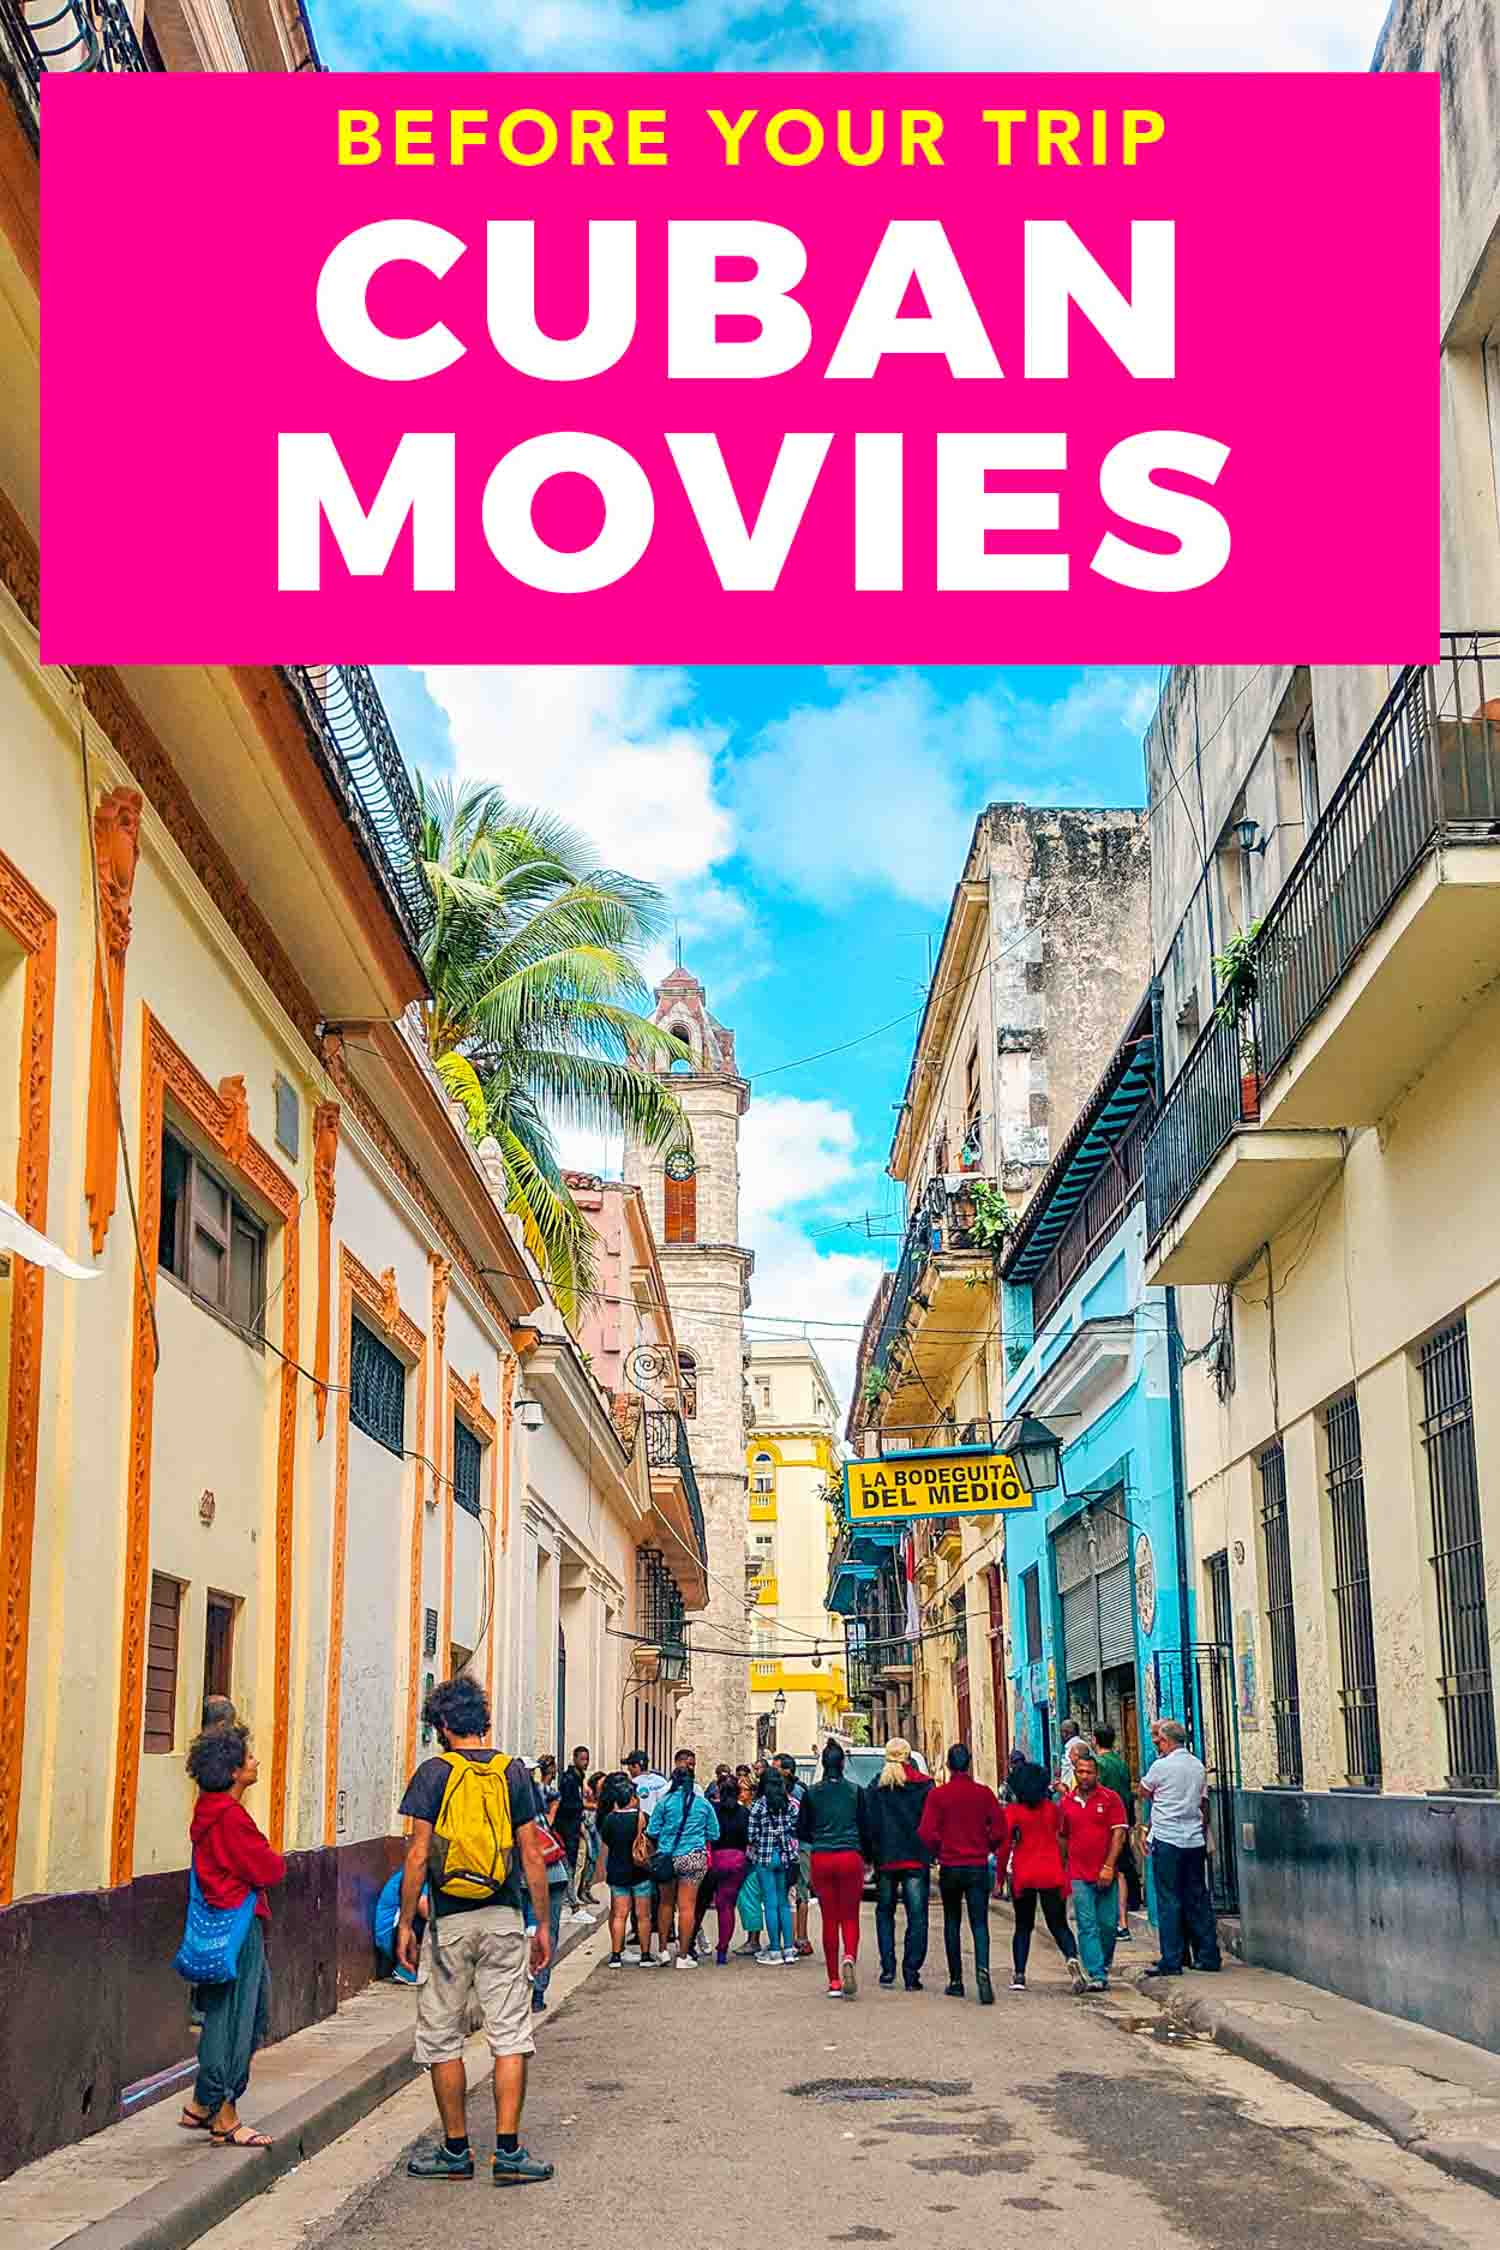 View of Old Havana streets with copy that reads inspire your trip